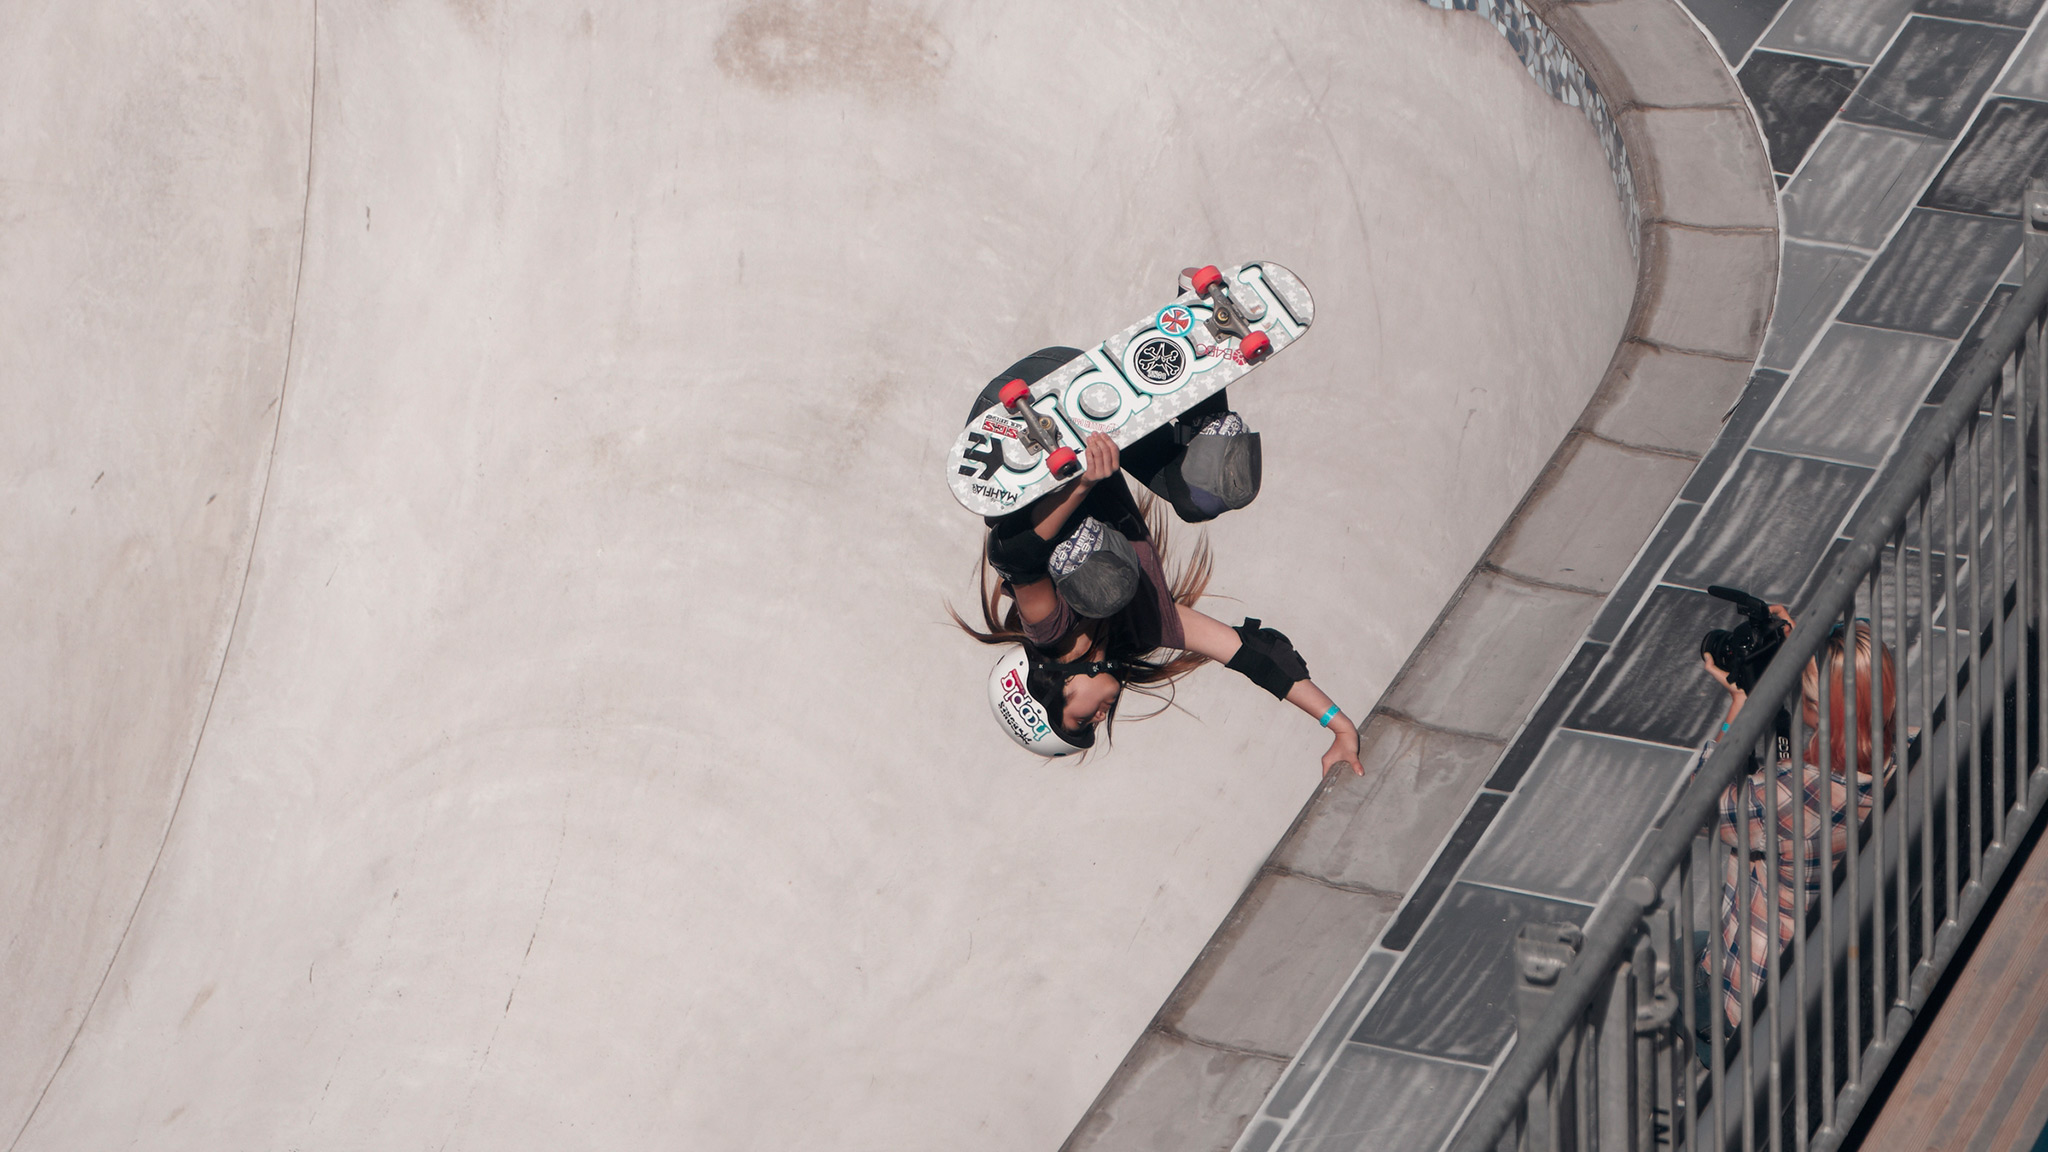 At X Games Barcelona, Alana Smith became the youngest athlete to ever medal in the X Games taking silver in the Skateboard Park contest. She'll be a dark horse for Women's Skateboard Street in Los Angeles.